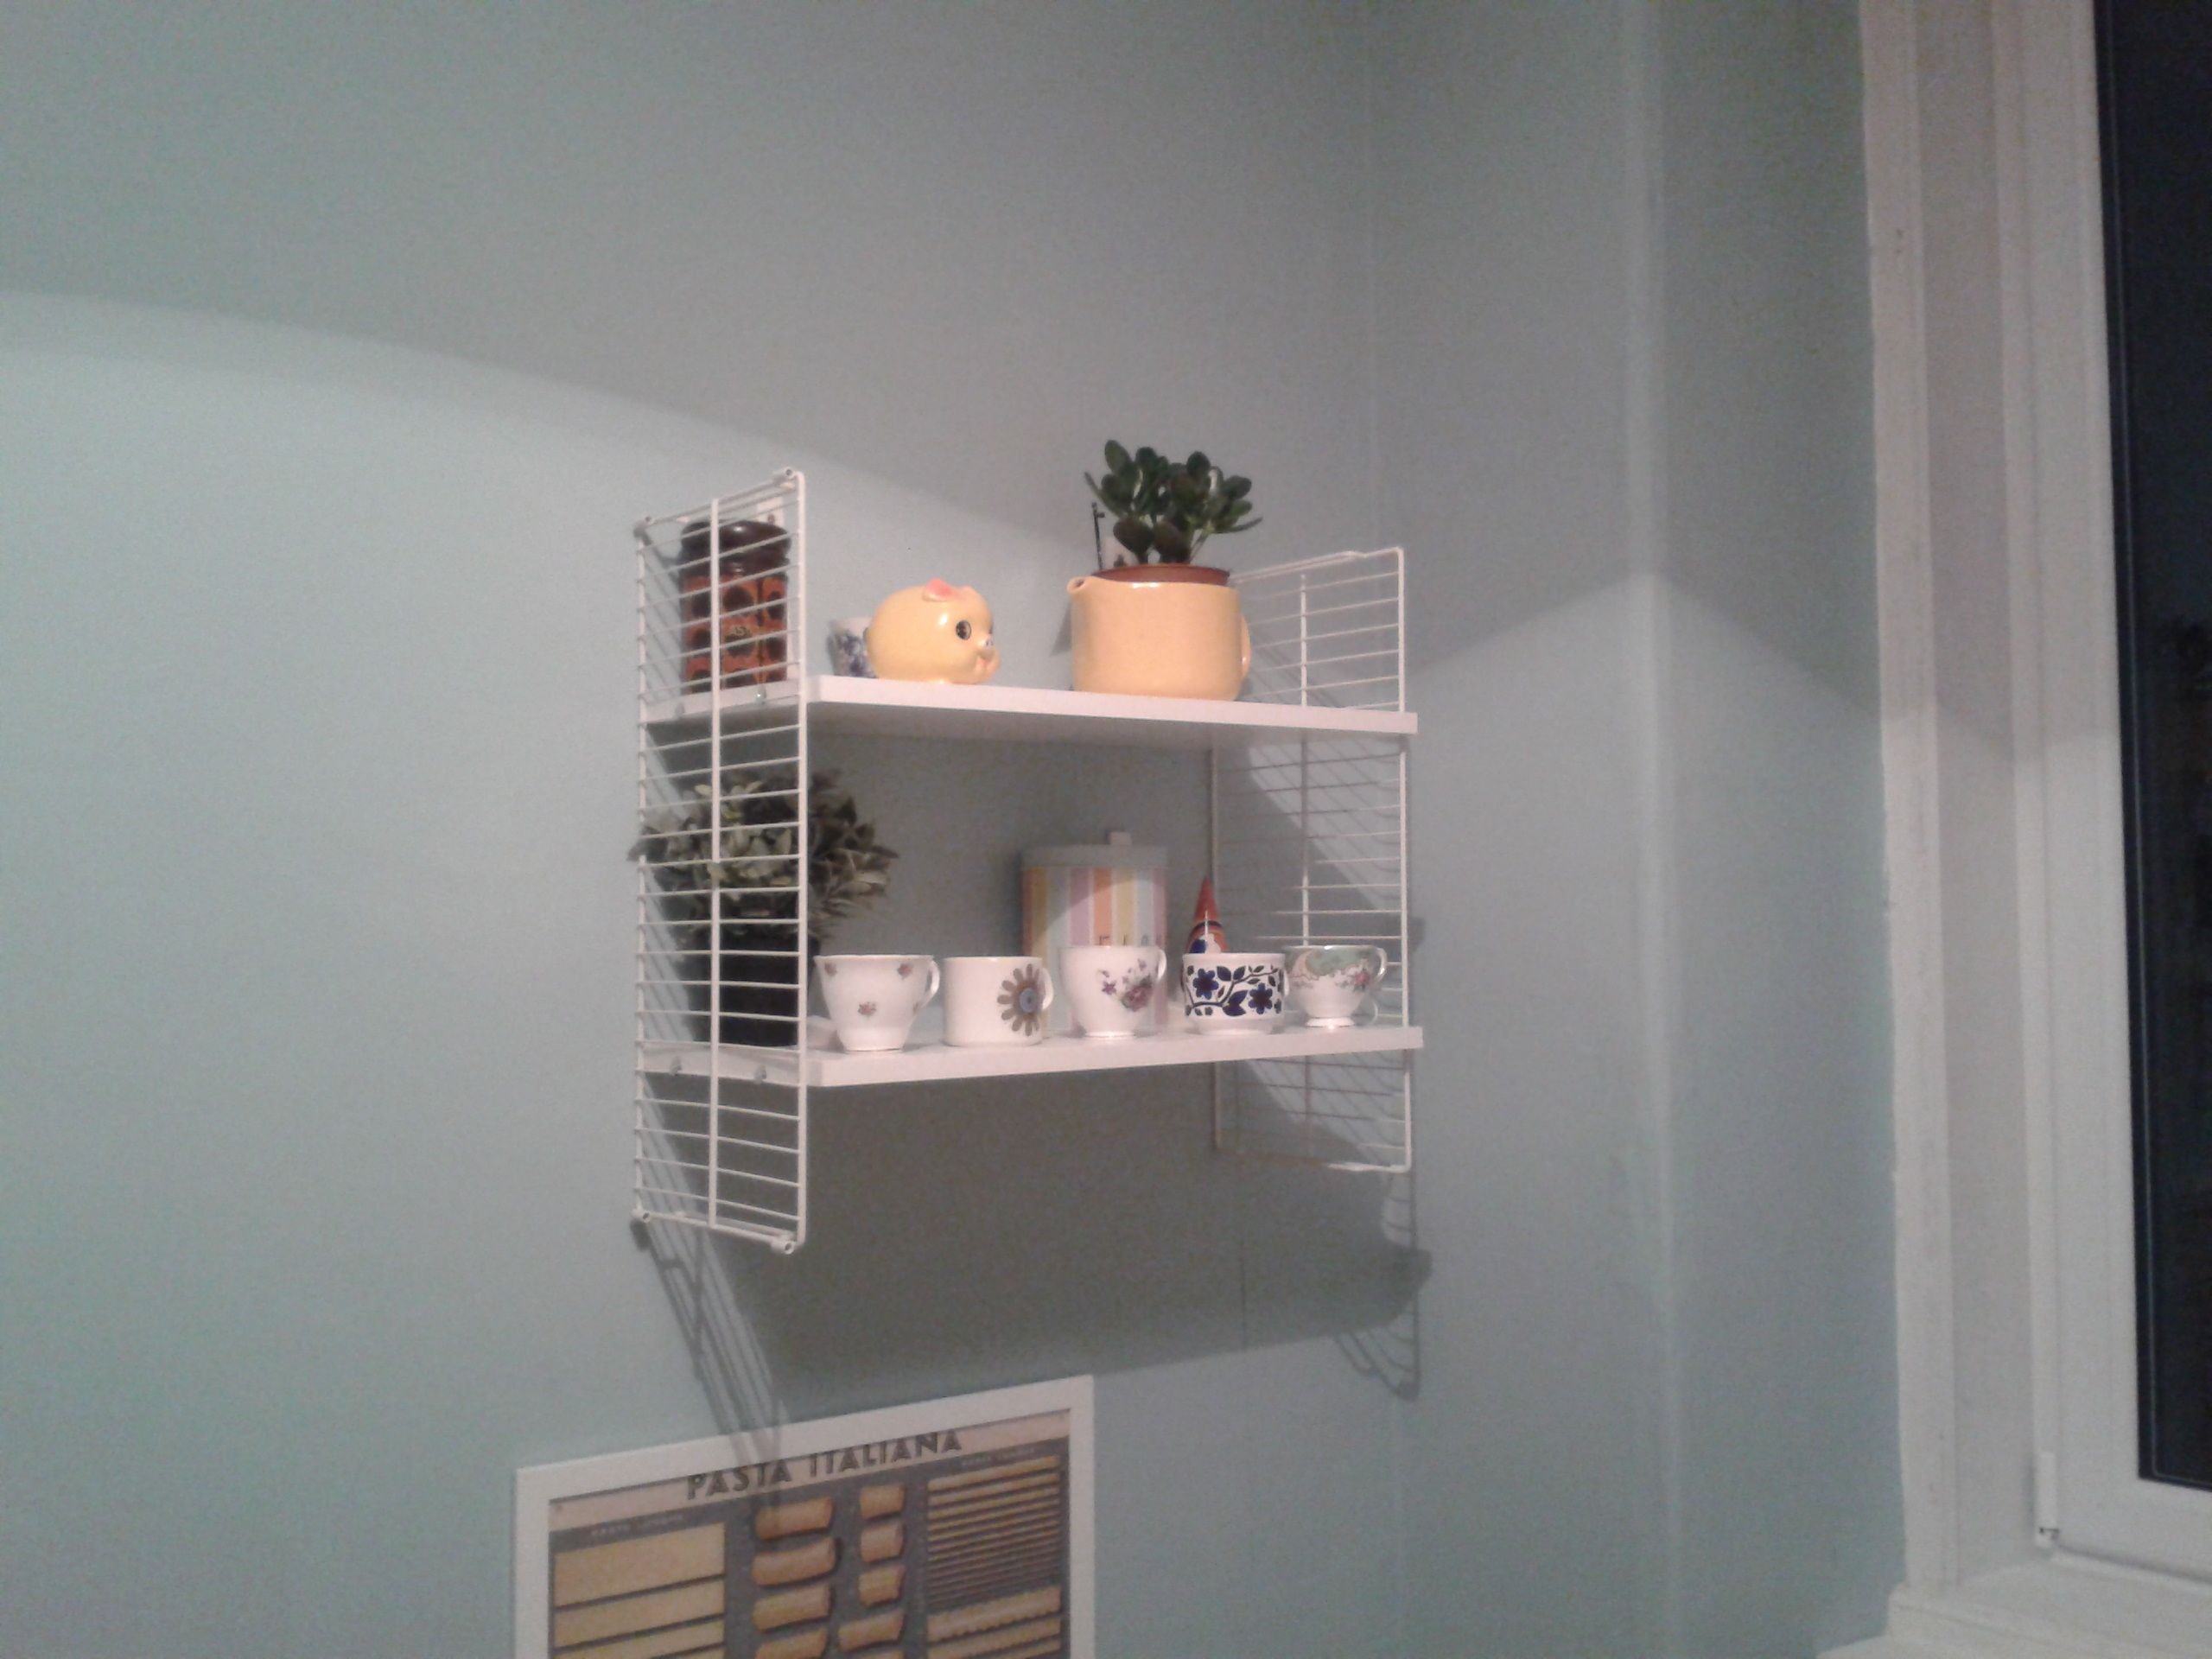 Faux retro diy string shelving ikea hack made from shelves and a